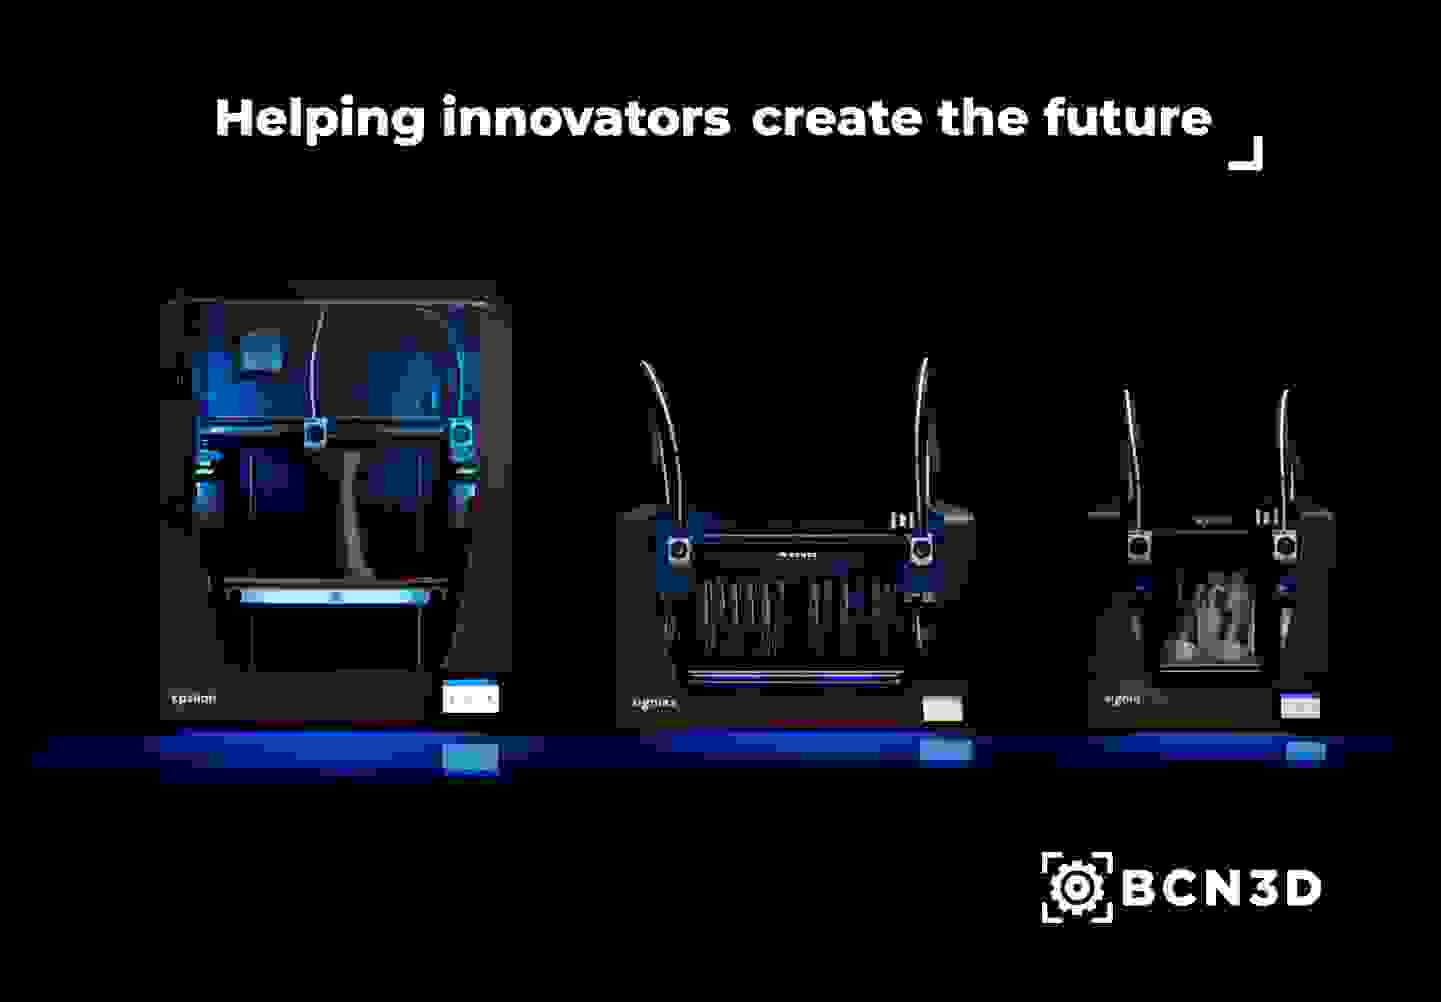 BCN3D – Helping innovators create the future